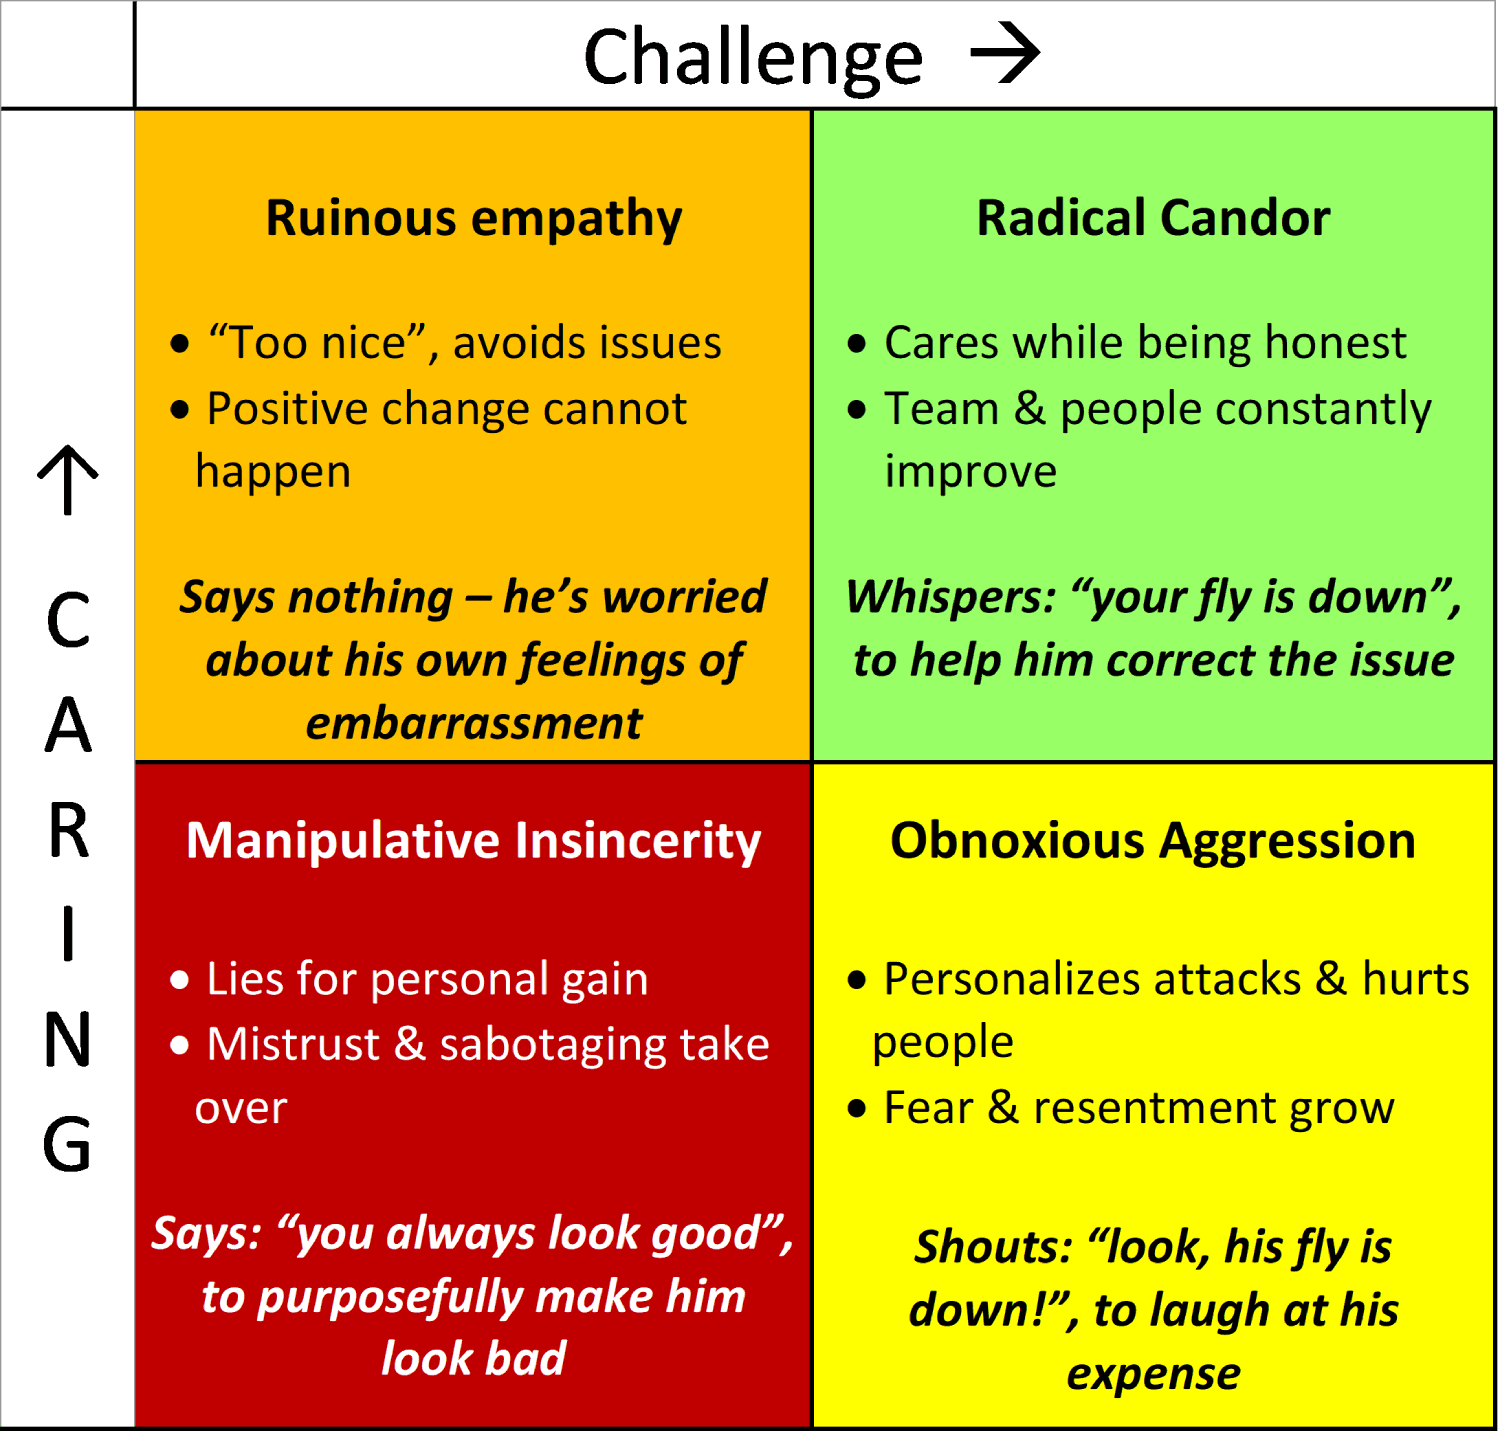 radical candor quadrants with descriptions